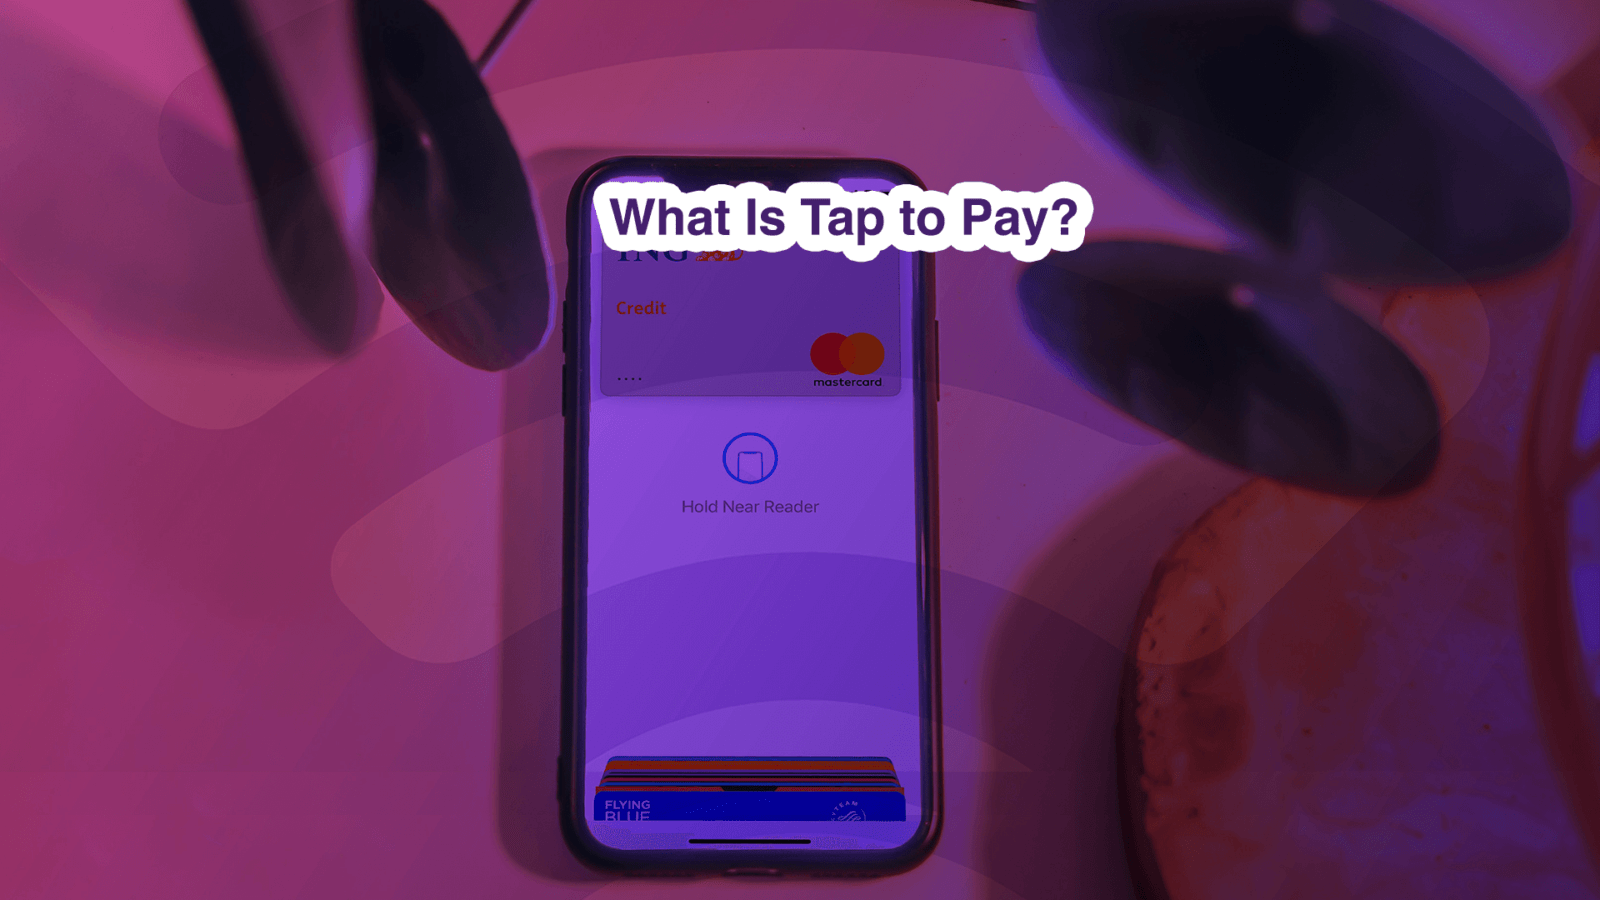 What is tap to pay?